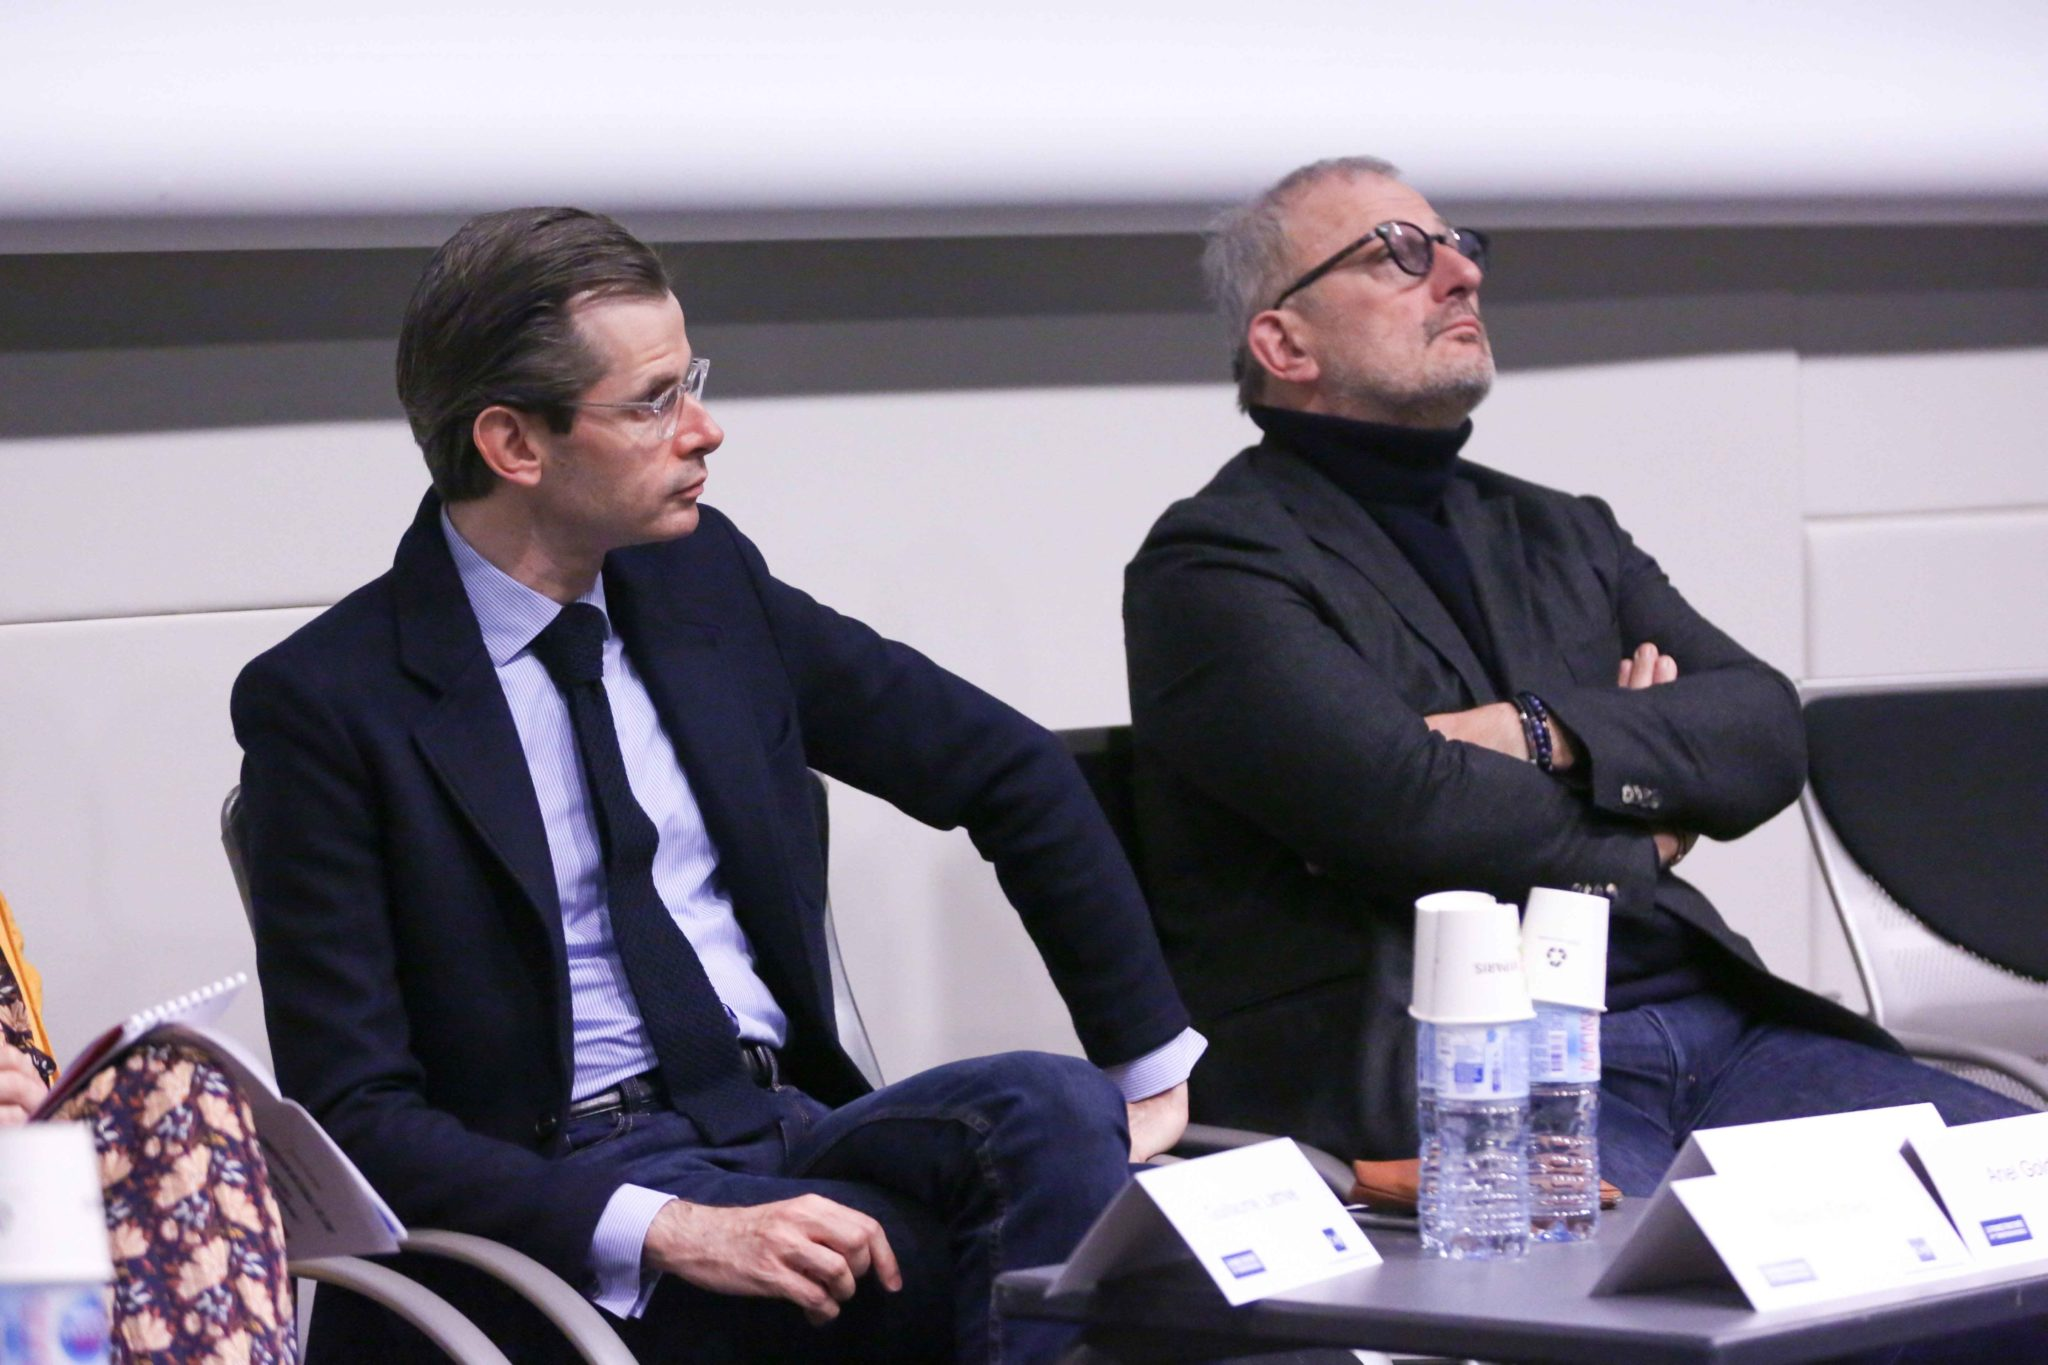 French right-wing Les Republicains (LR) party member of Parliament and candidate to the party presidency Guillaume Larrive Guillaume Larrivé (L) and French Member of Parliament of the Libertes et Territoires parliamentary group  François Pupponi (R) take